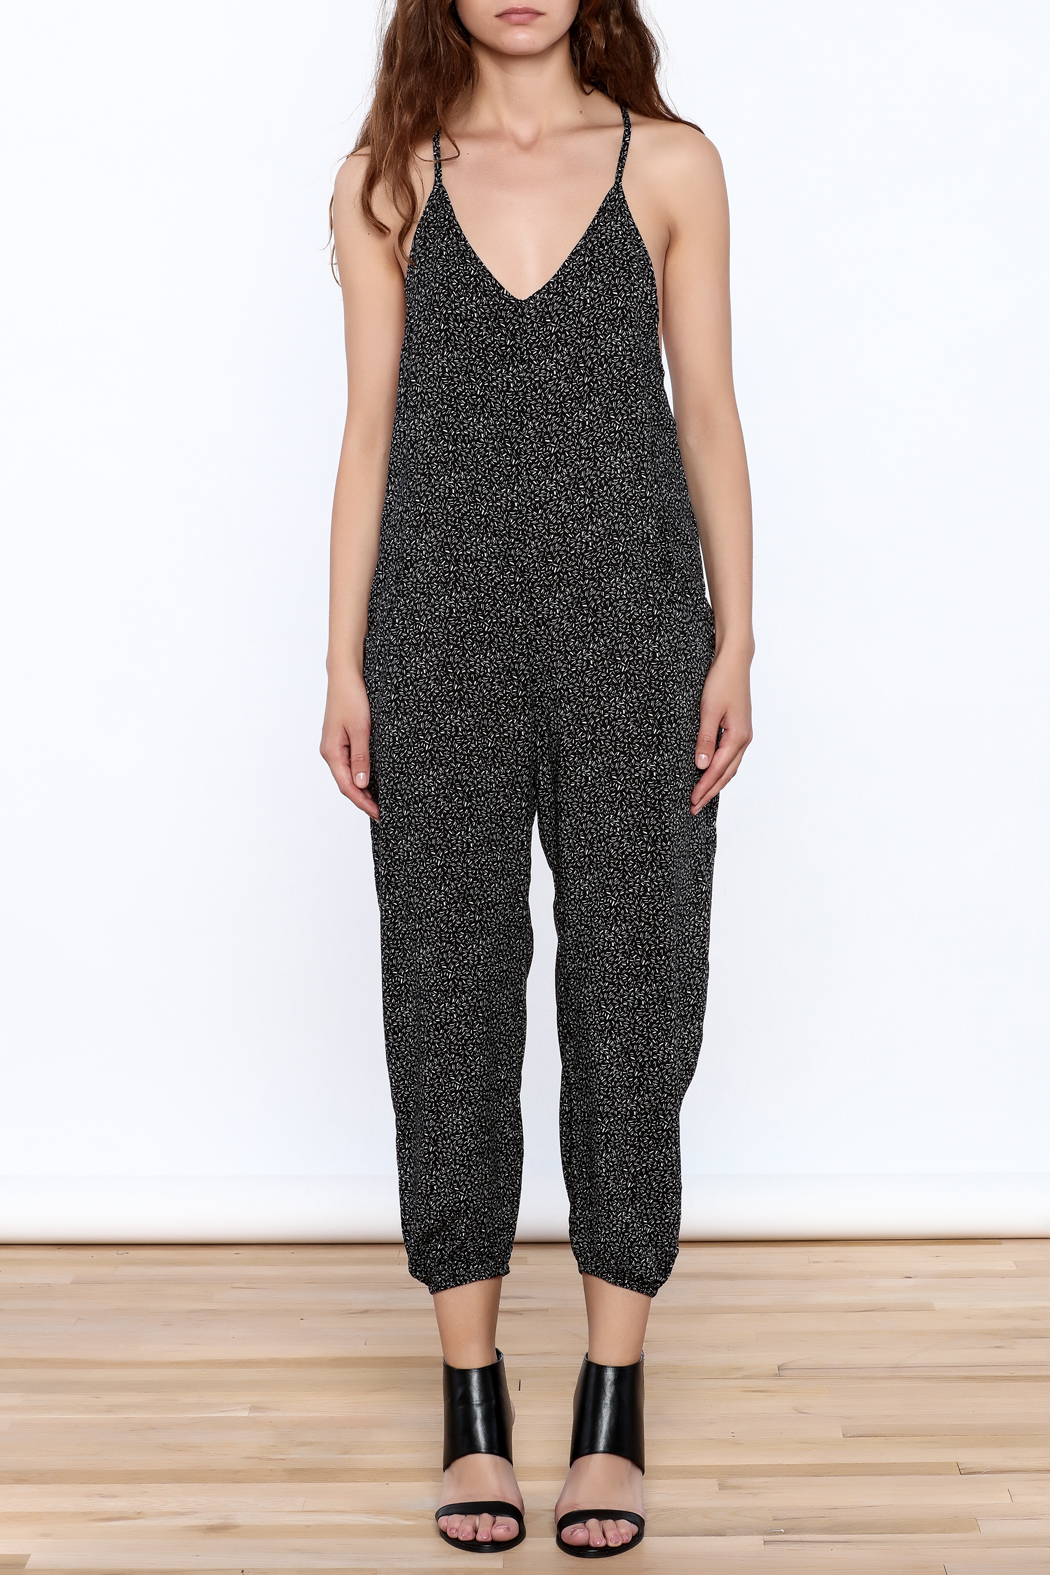 2f88776937 dress forum Black Printed Sleeveless Jumpsuit from New York by Dor L ...